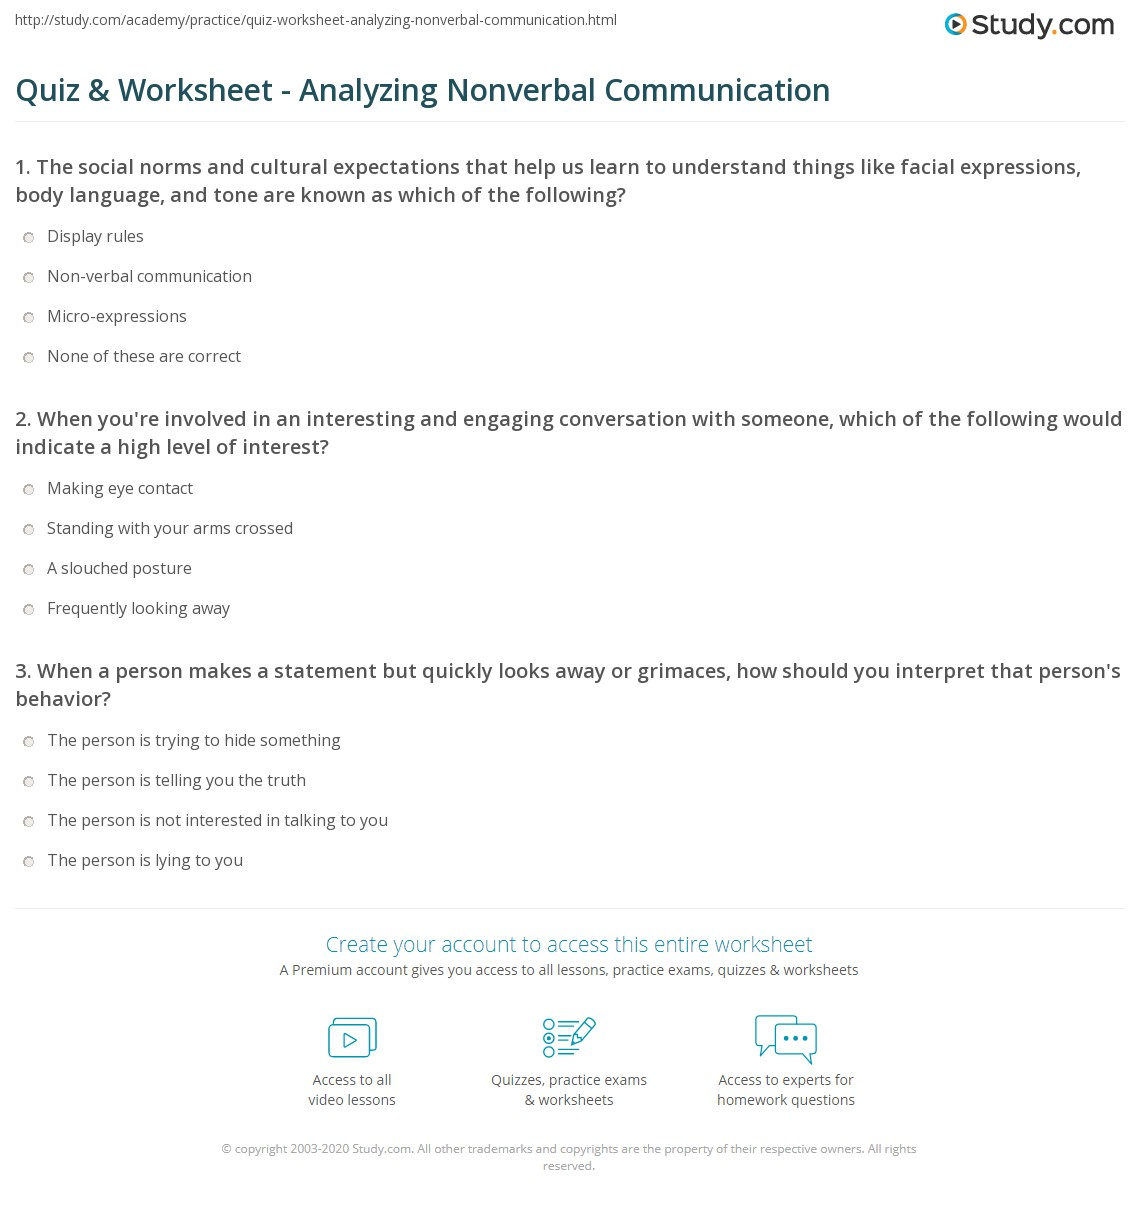 quiz worksheet analyzing nonverbal communication com print how to analyze non verbal communication worksheet